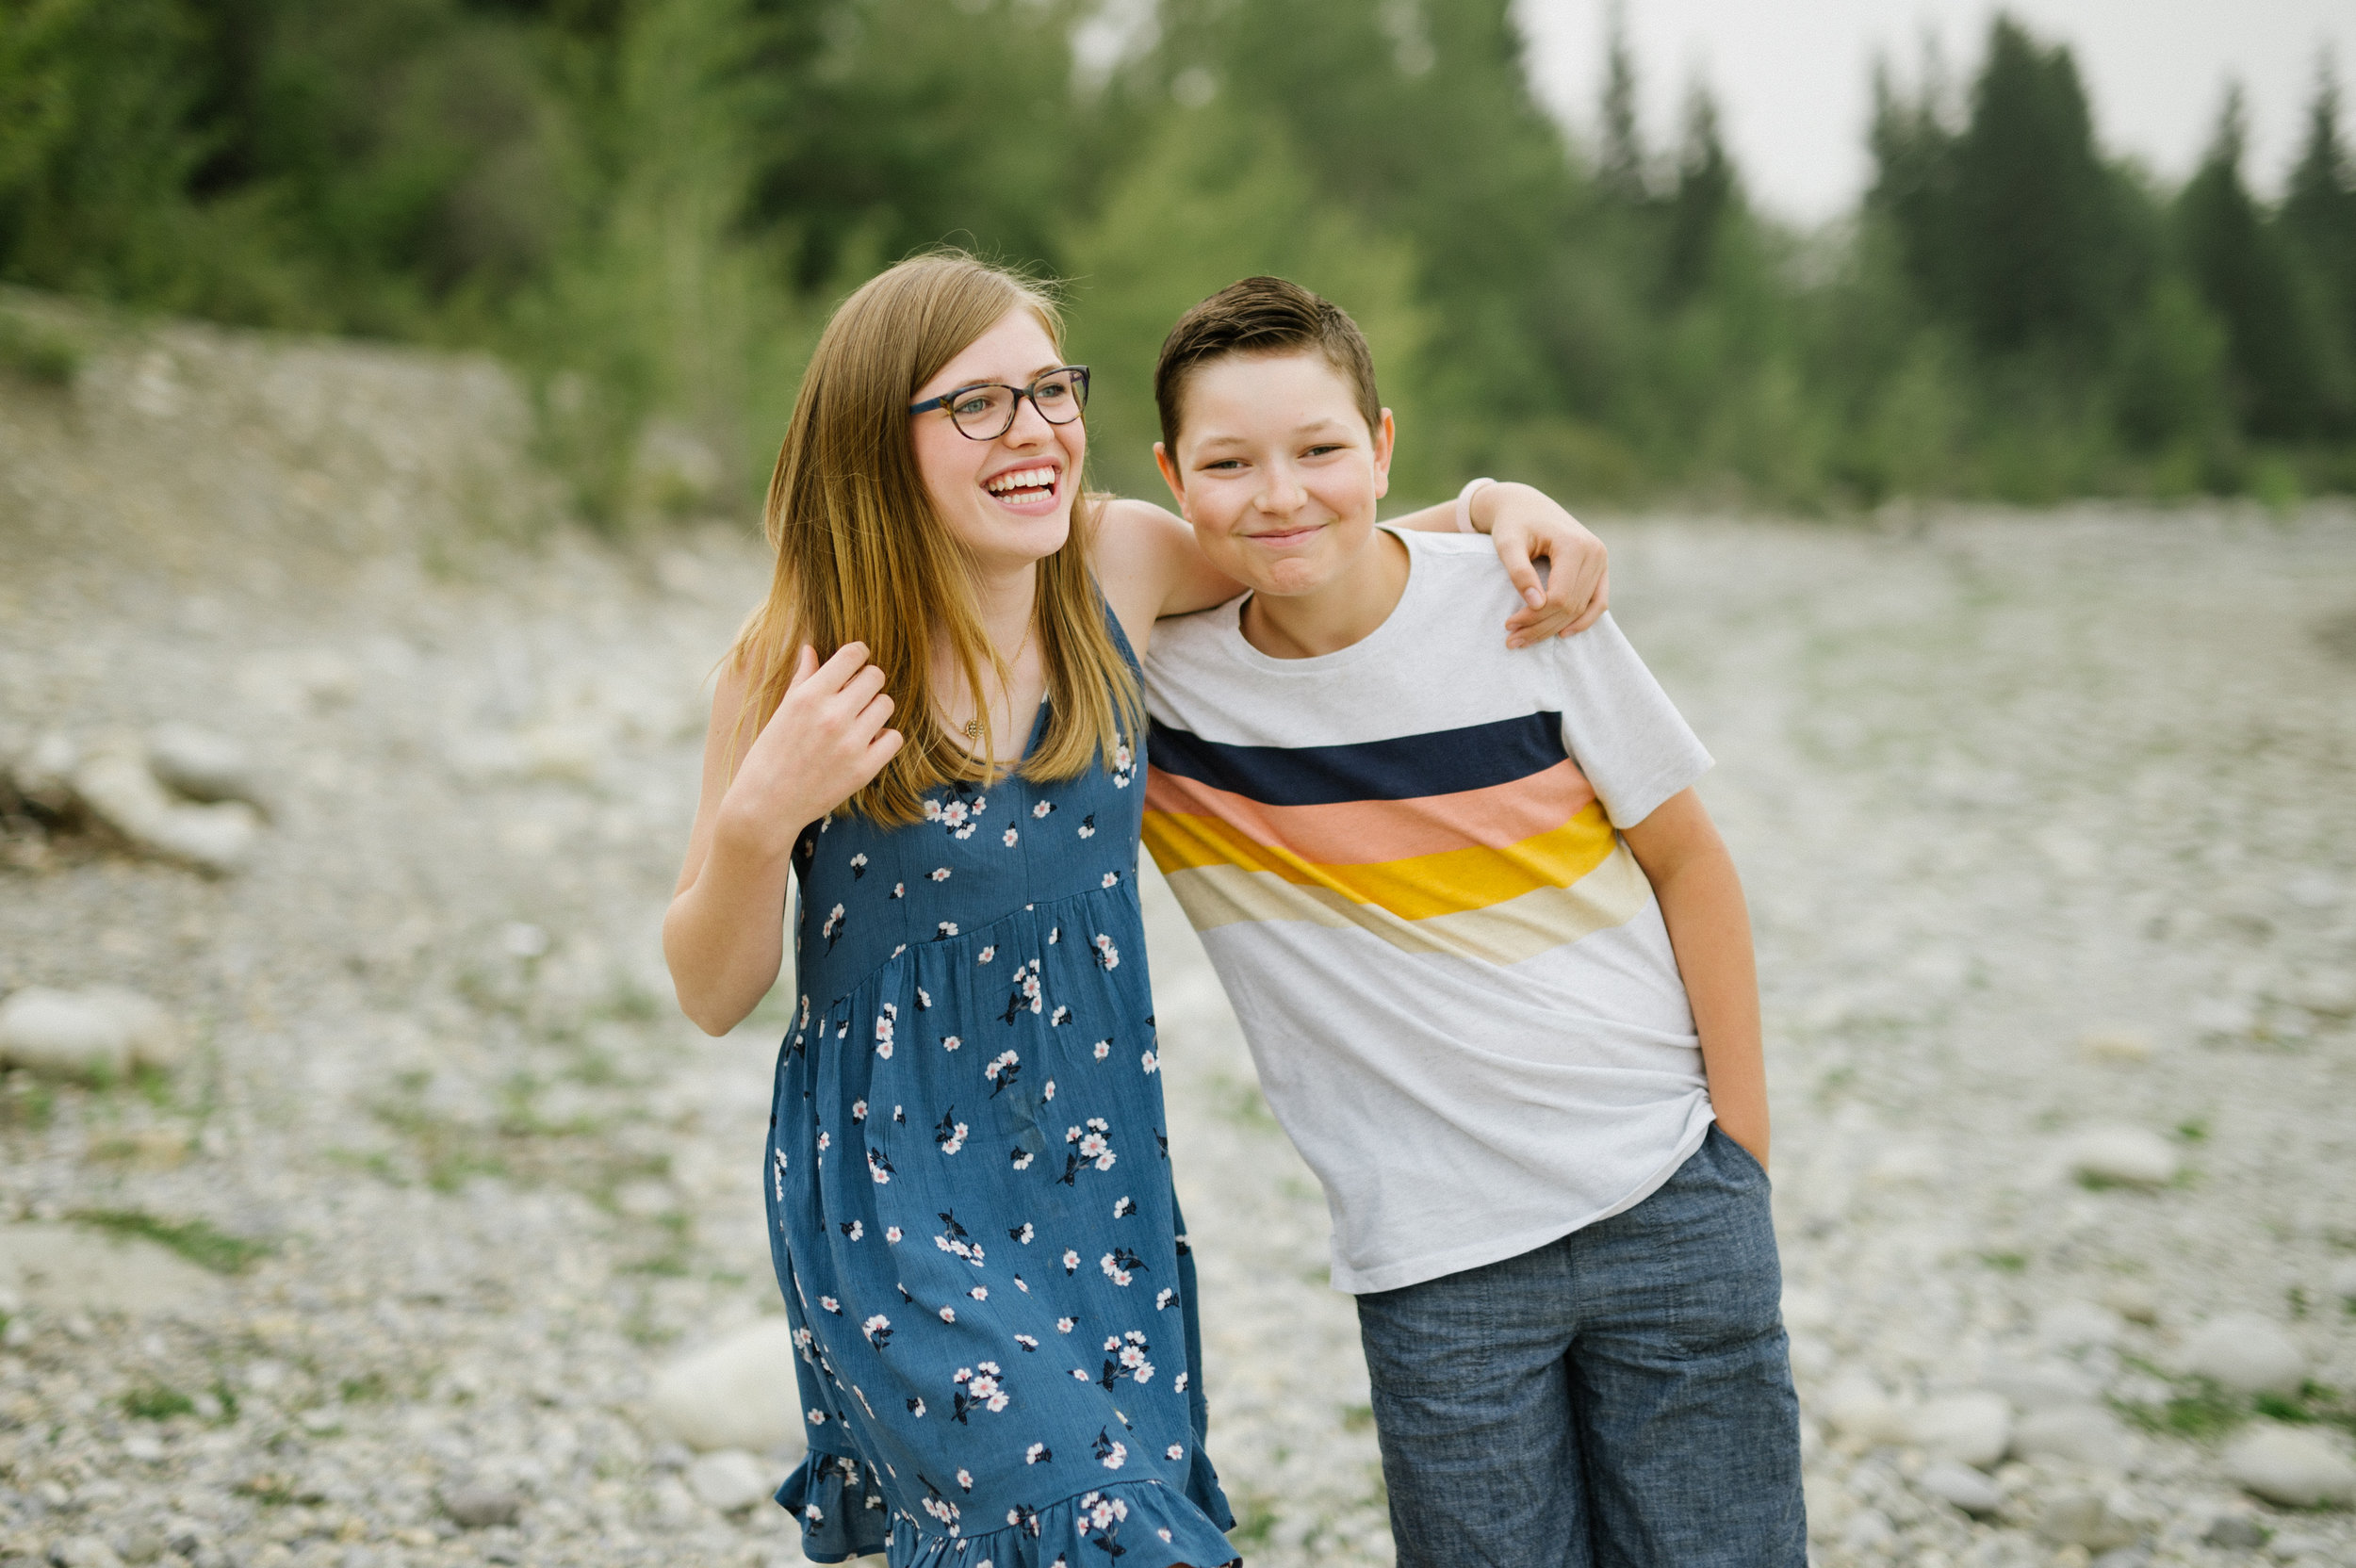 Calgary_Family_Photography_Hodgson_Family_Portraits_2018_HR013.jpg